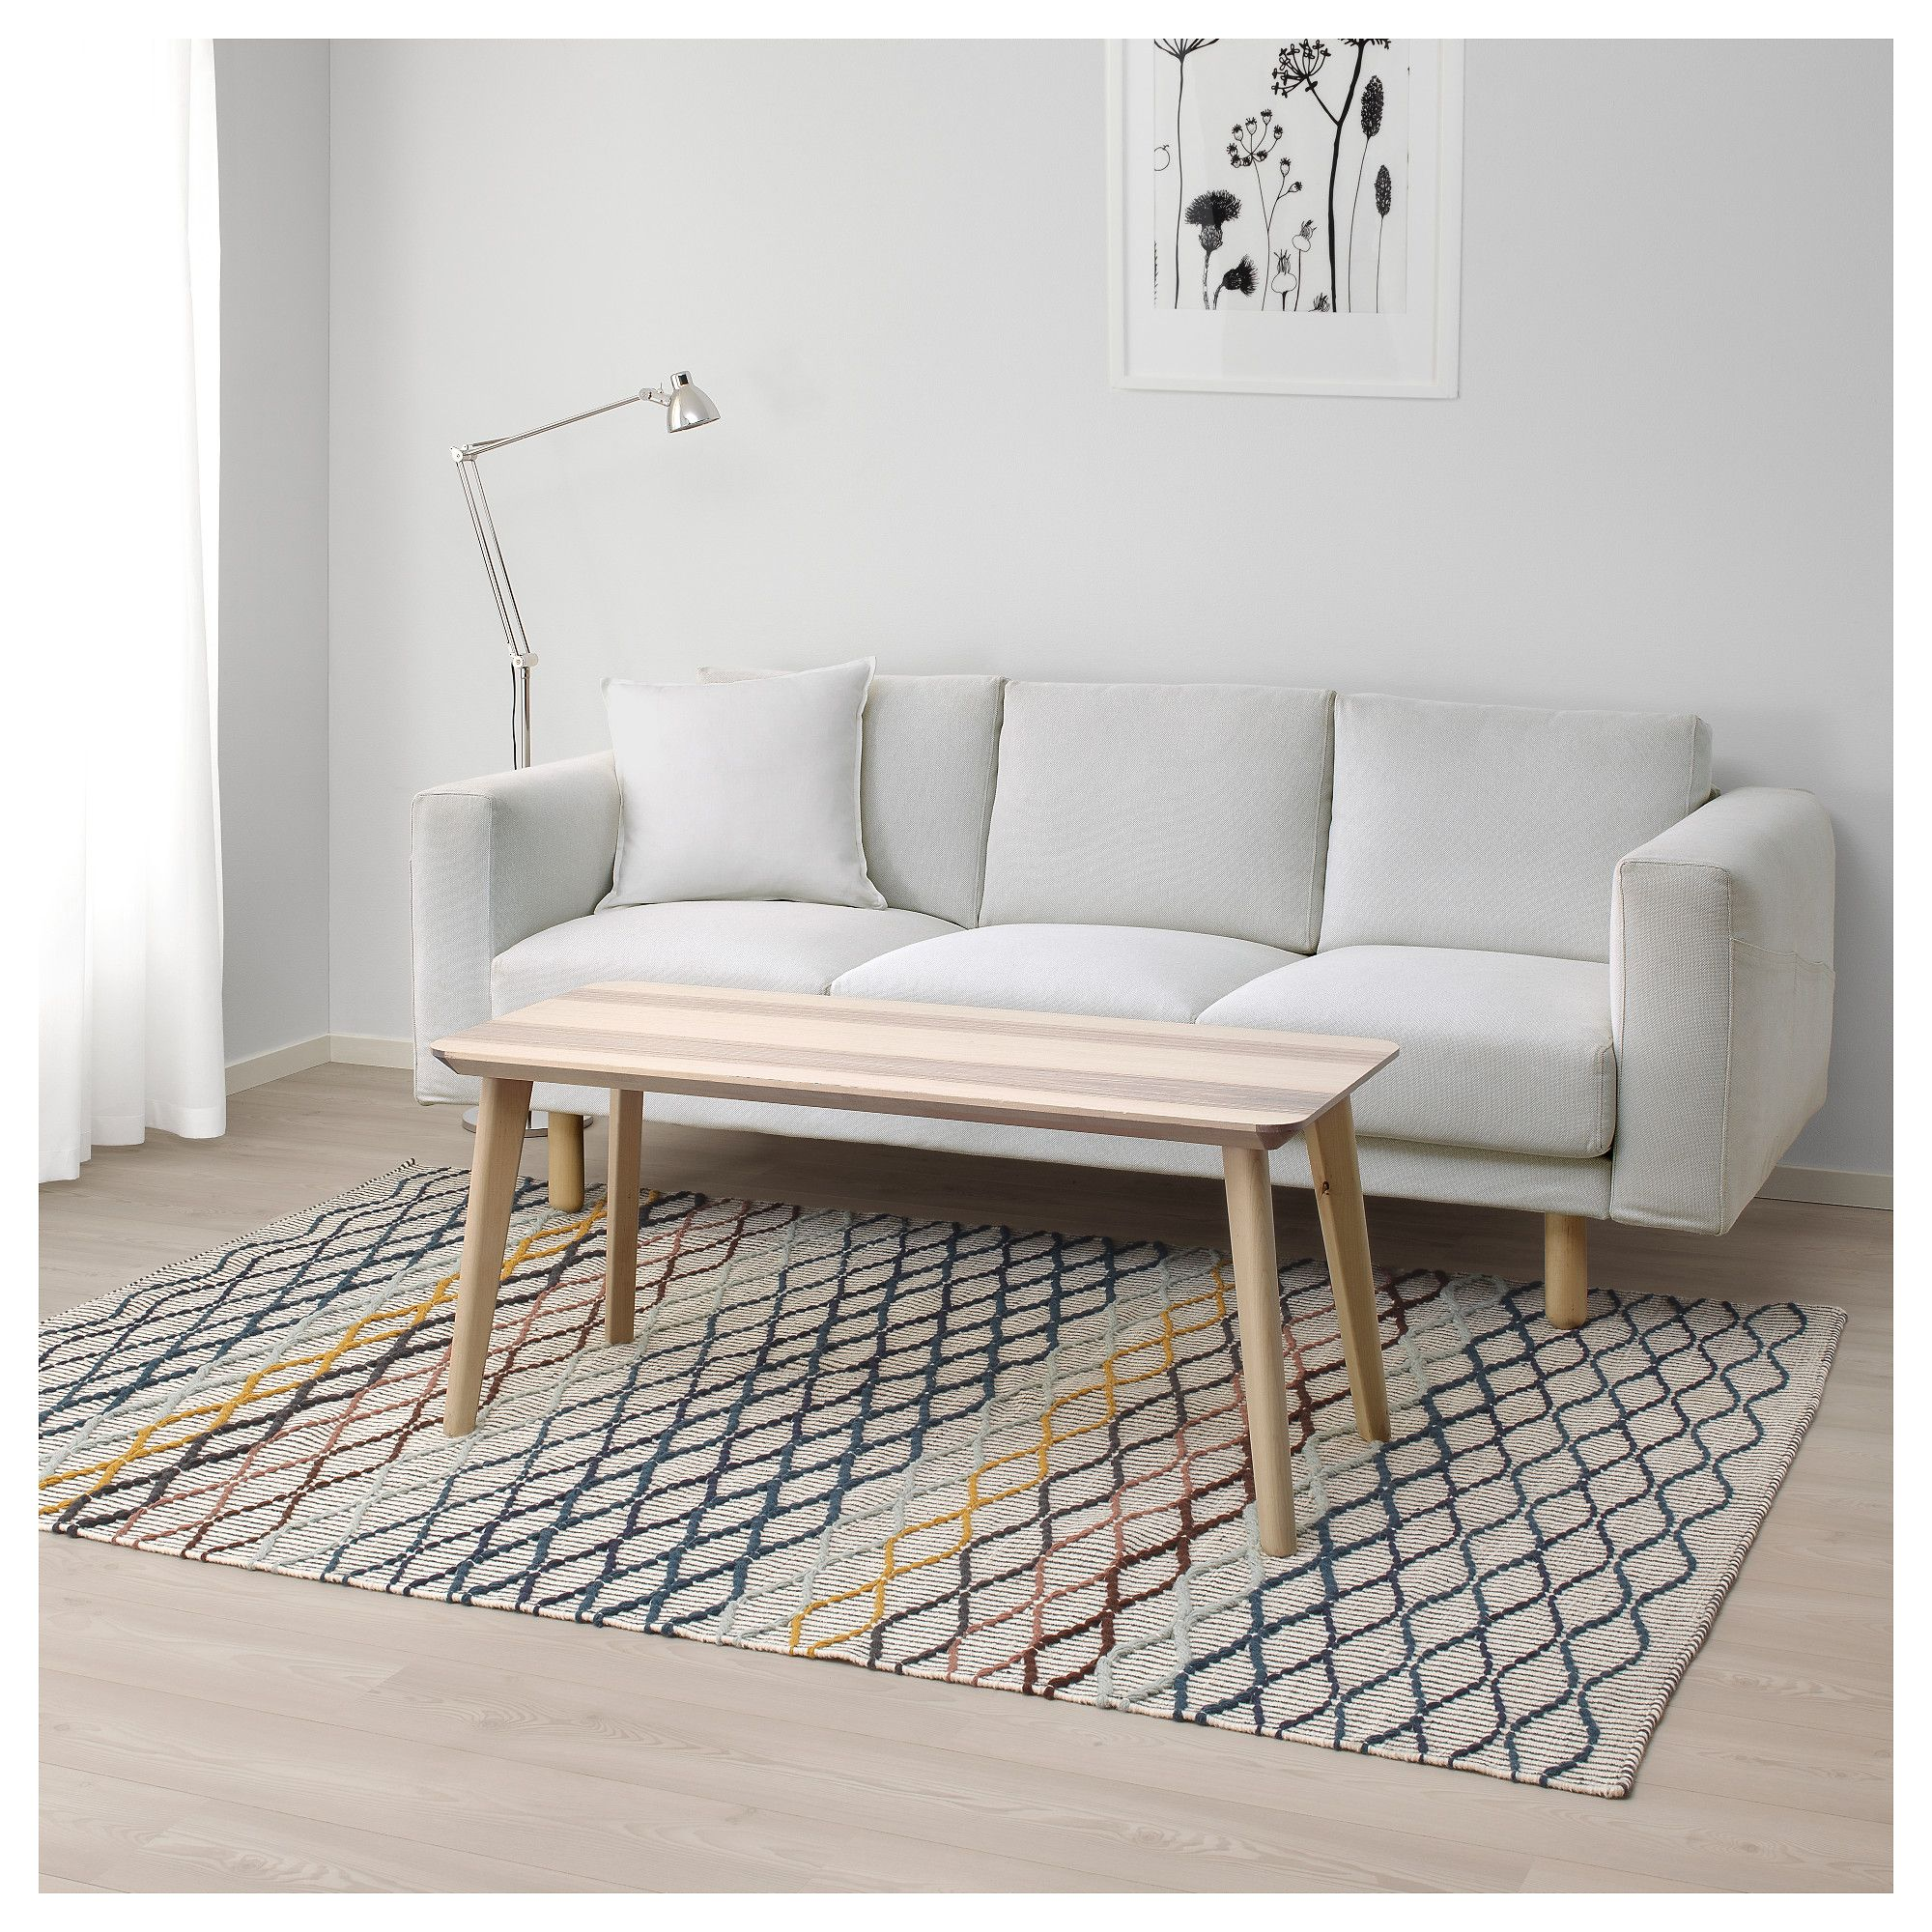 Furniture and Home Furnishings Ikea, Ikea rug, Furniture